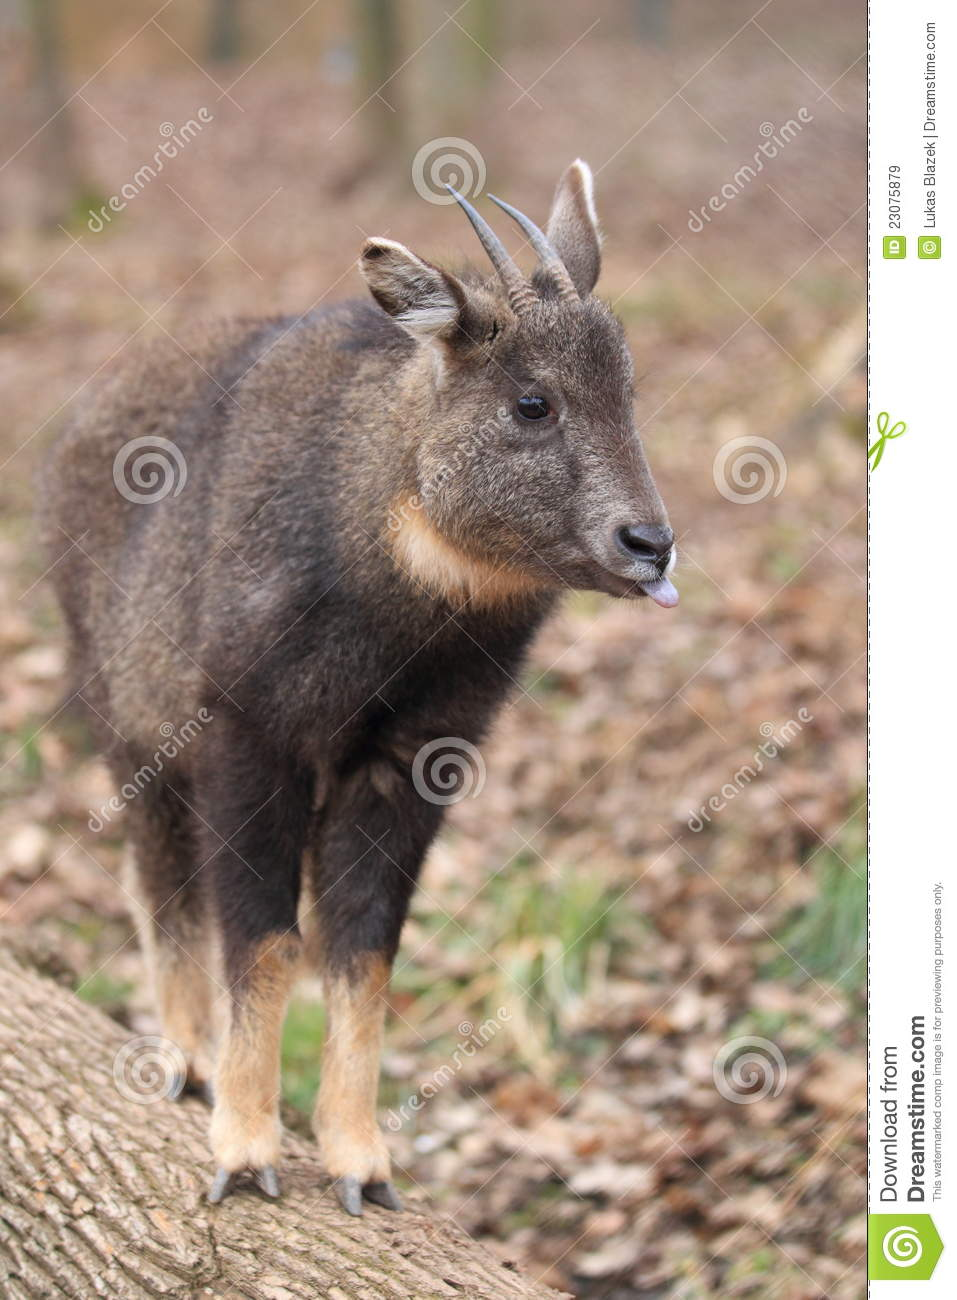 Goral Long-tailed